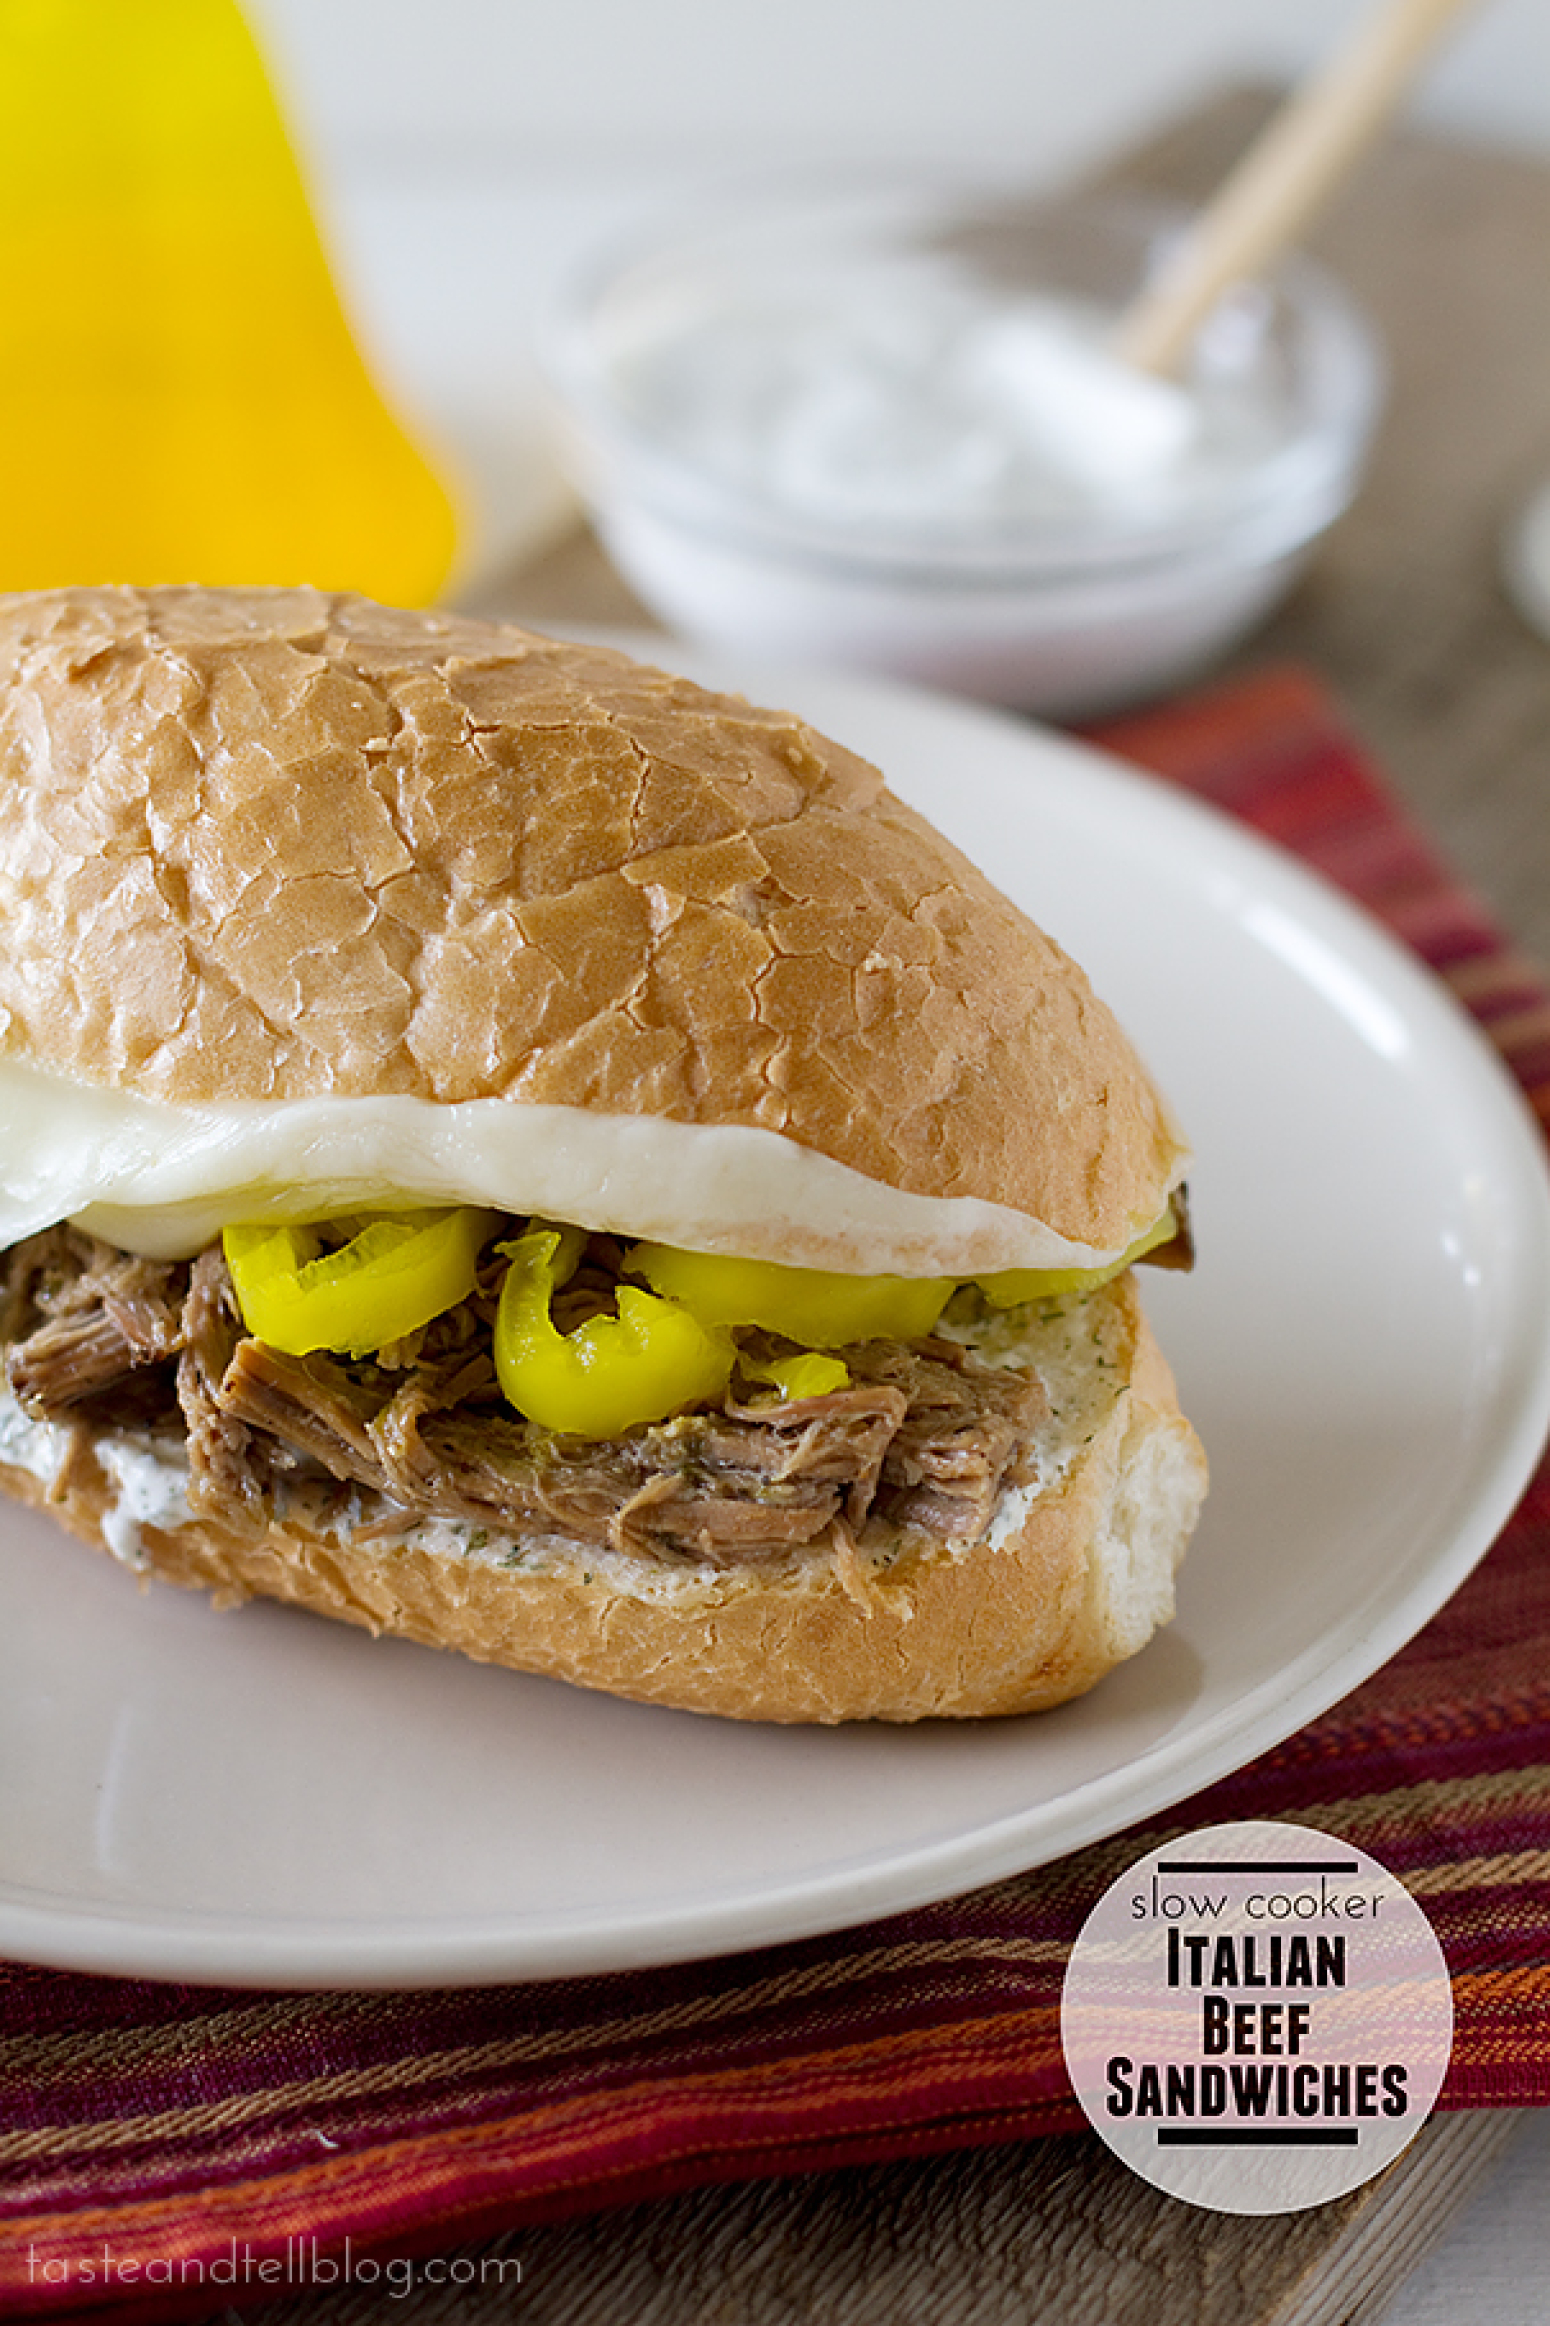 Slow Cooker Italian Beef Sandwiches Recipe 2 | Just A Pinch Recipes